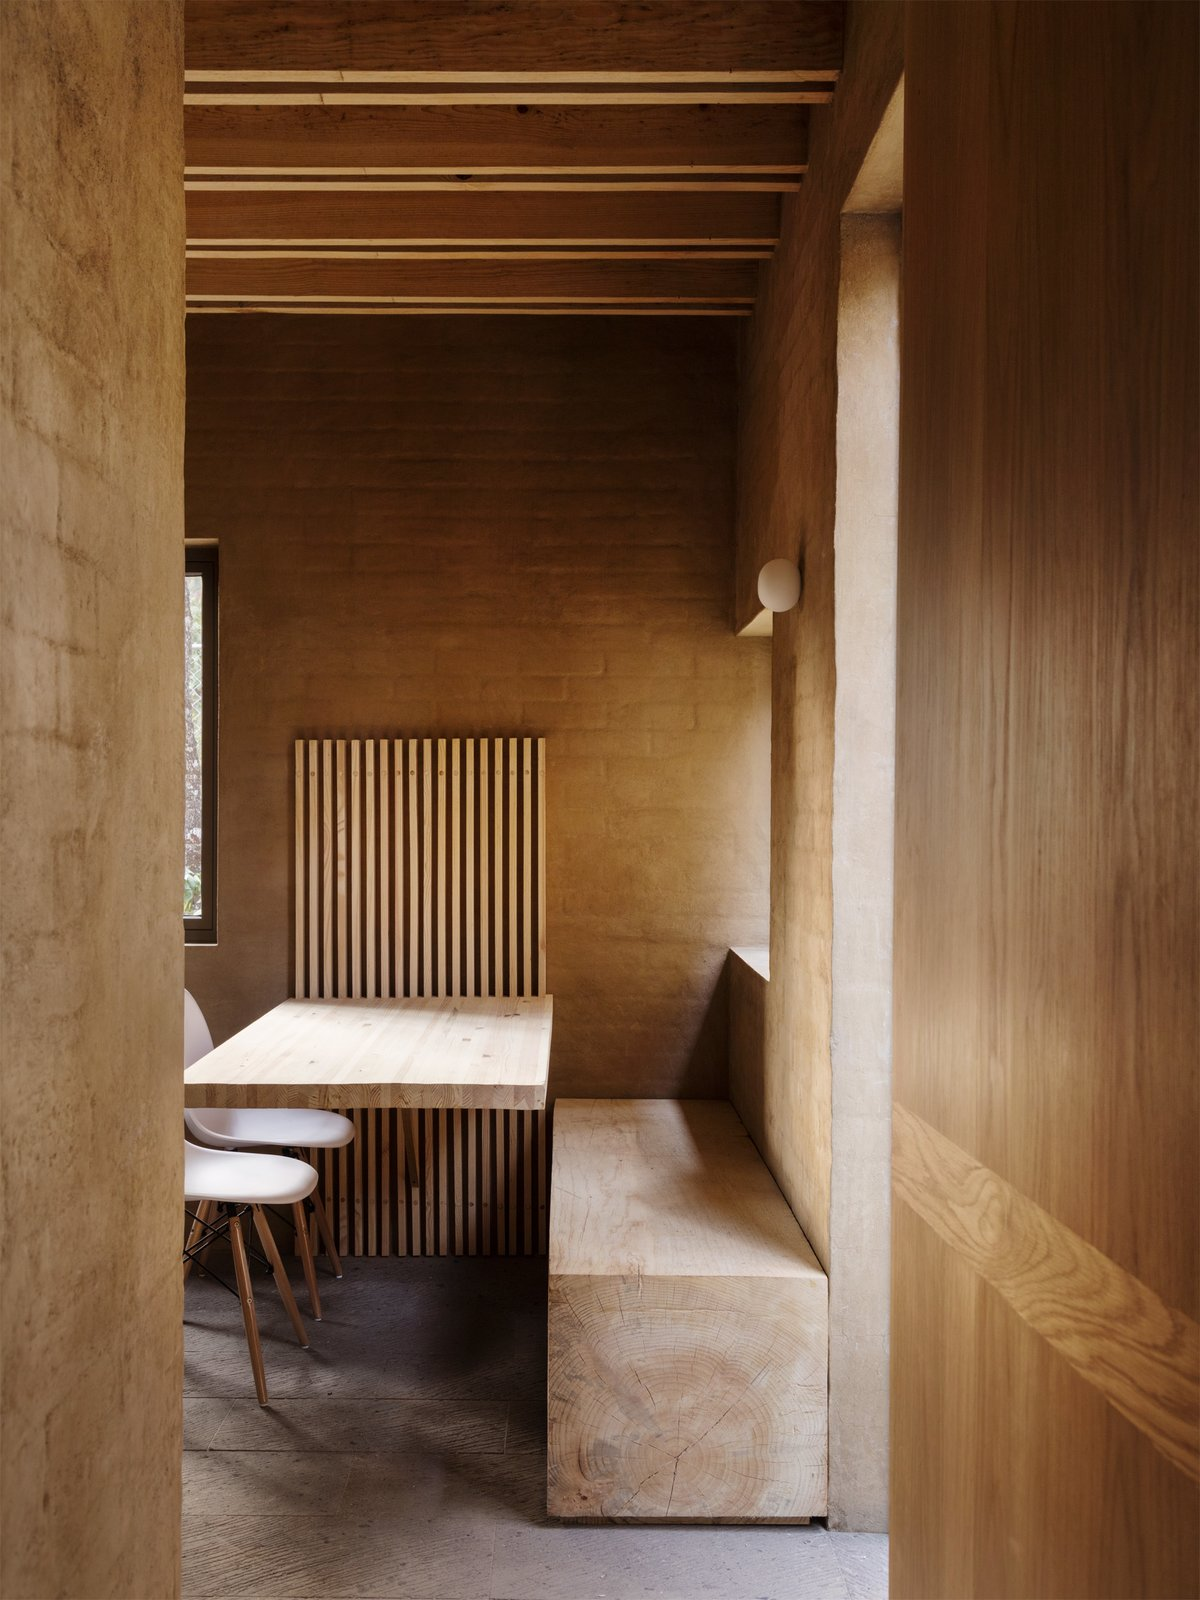 Dining Room, Wall Lighting, Chair, Bench, and Table A dining area with a built-in bench and table.  Photos from Five Cubist Hideaways Peek Out From a Mexican Pine Forest